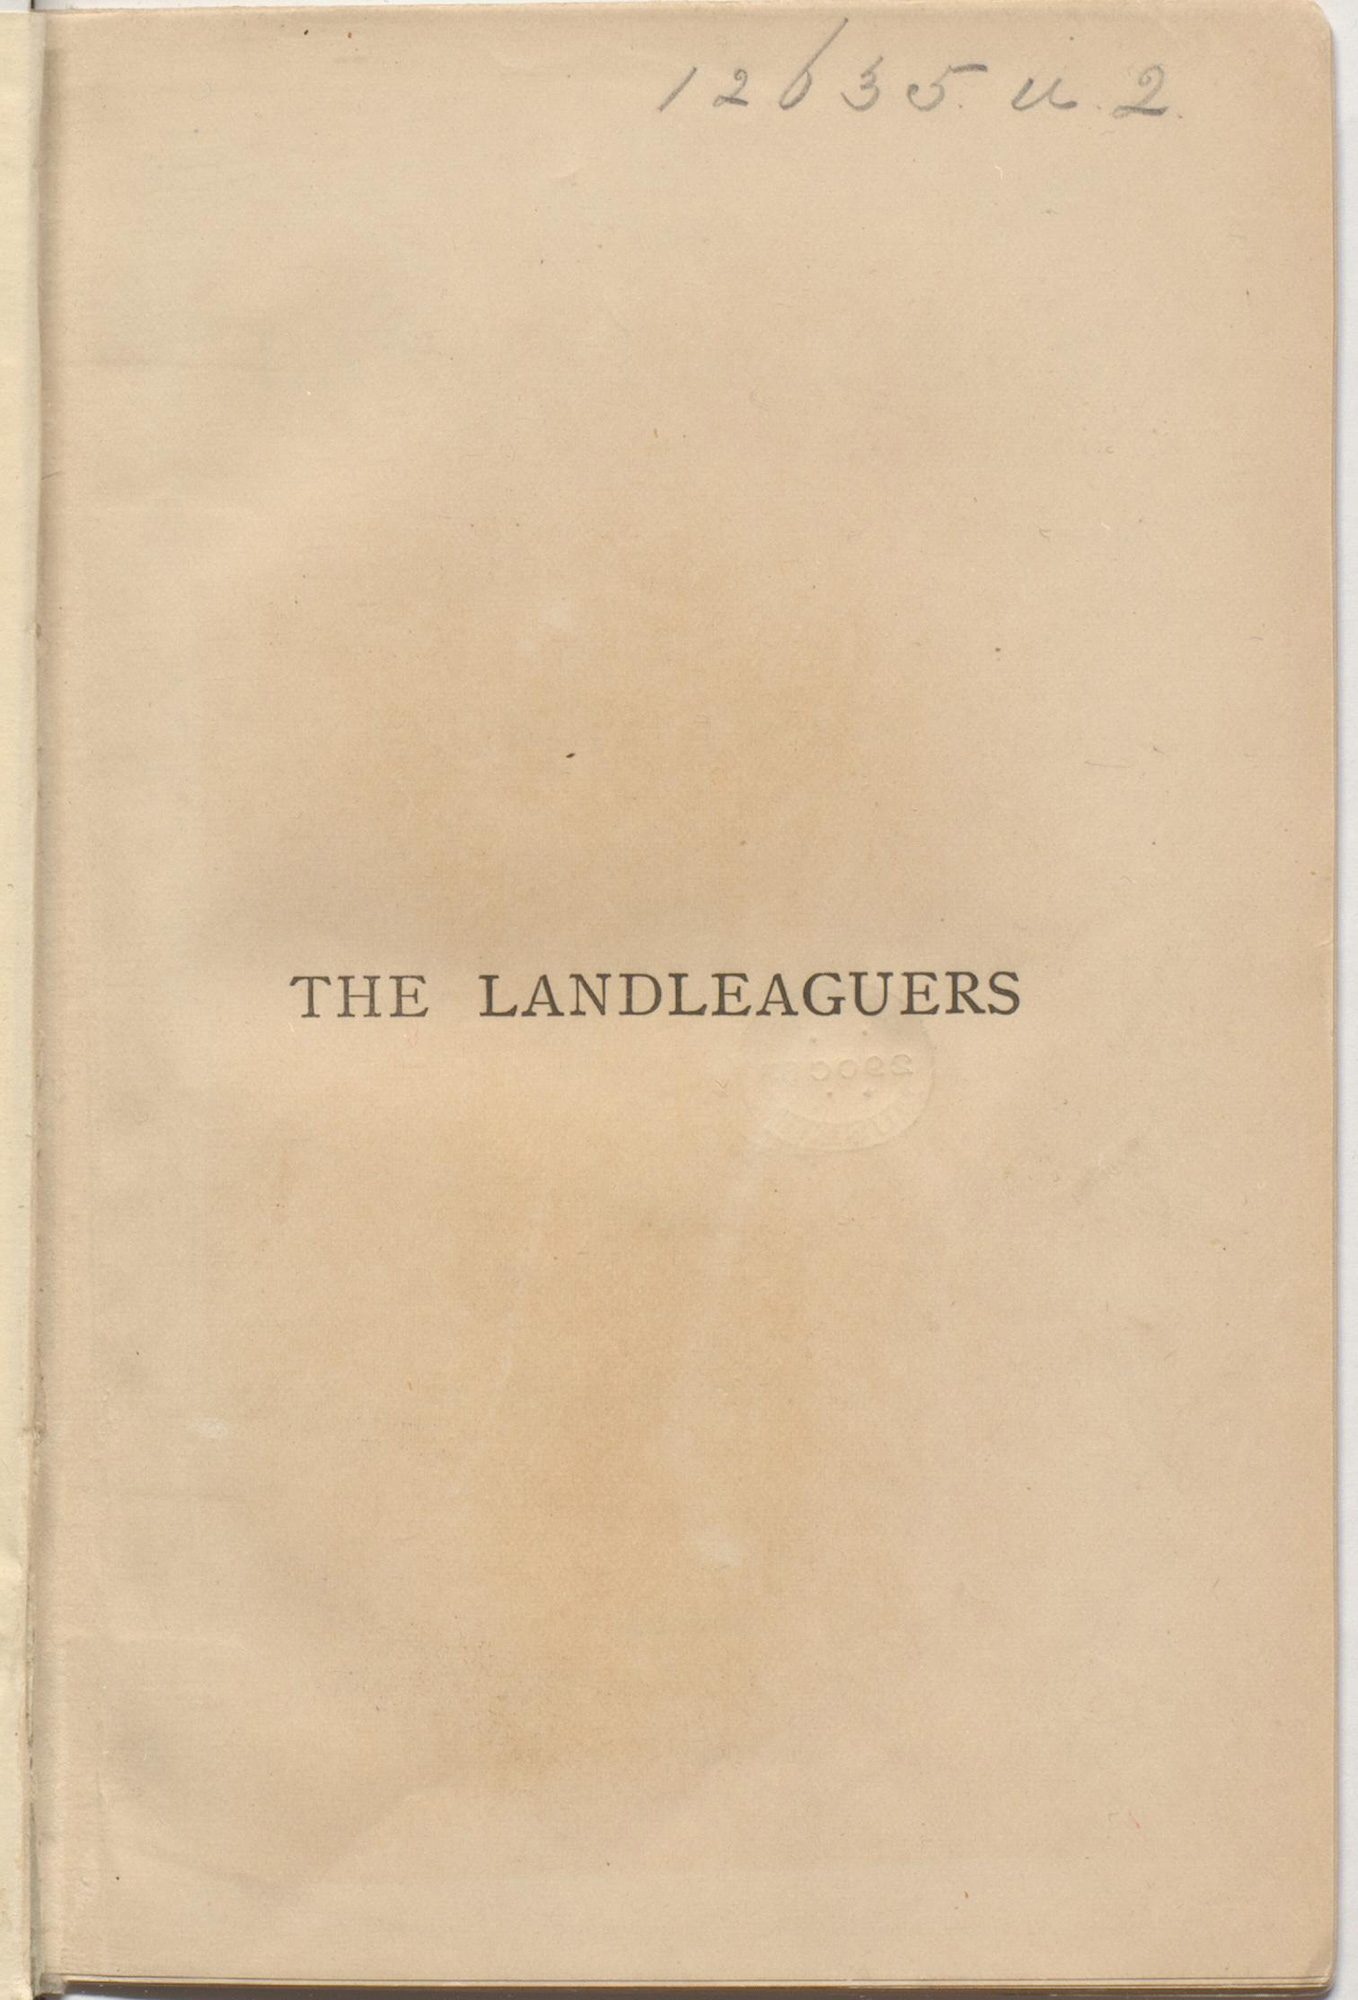 The Landleaguers by Trollope